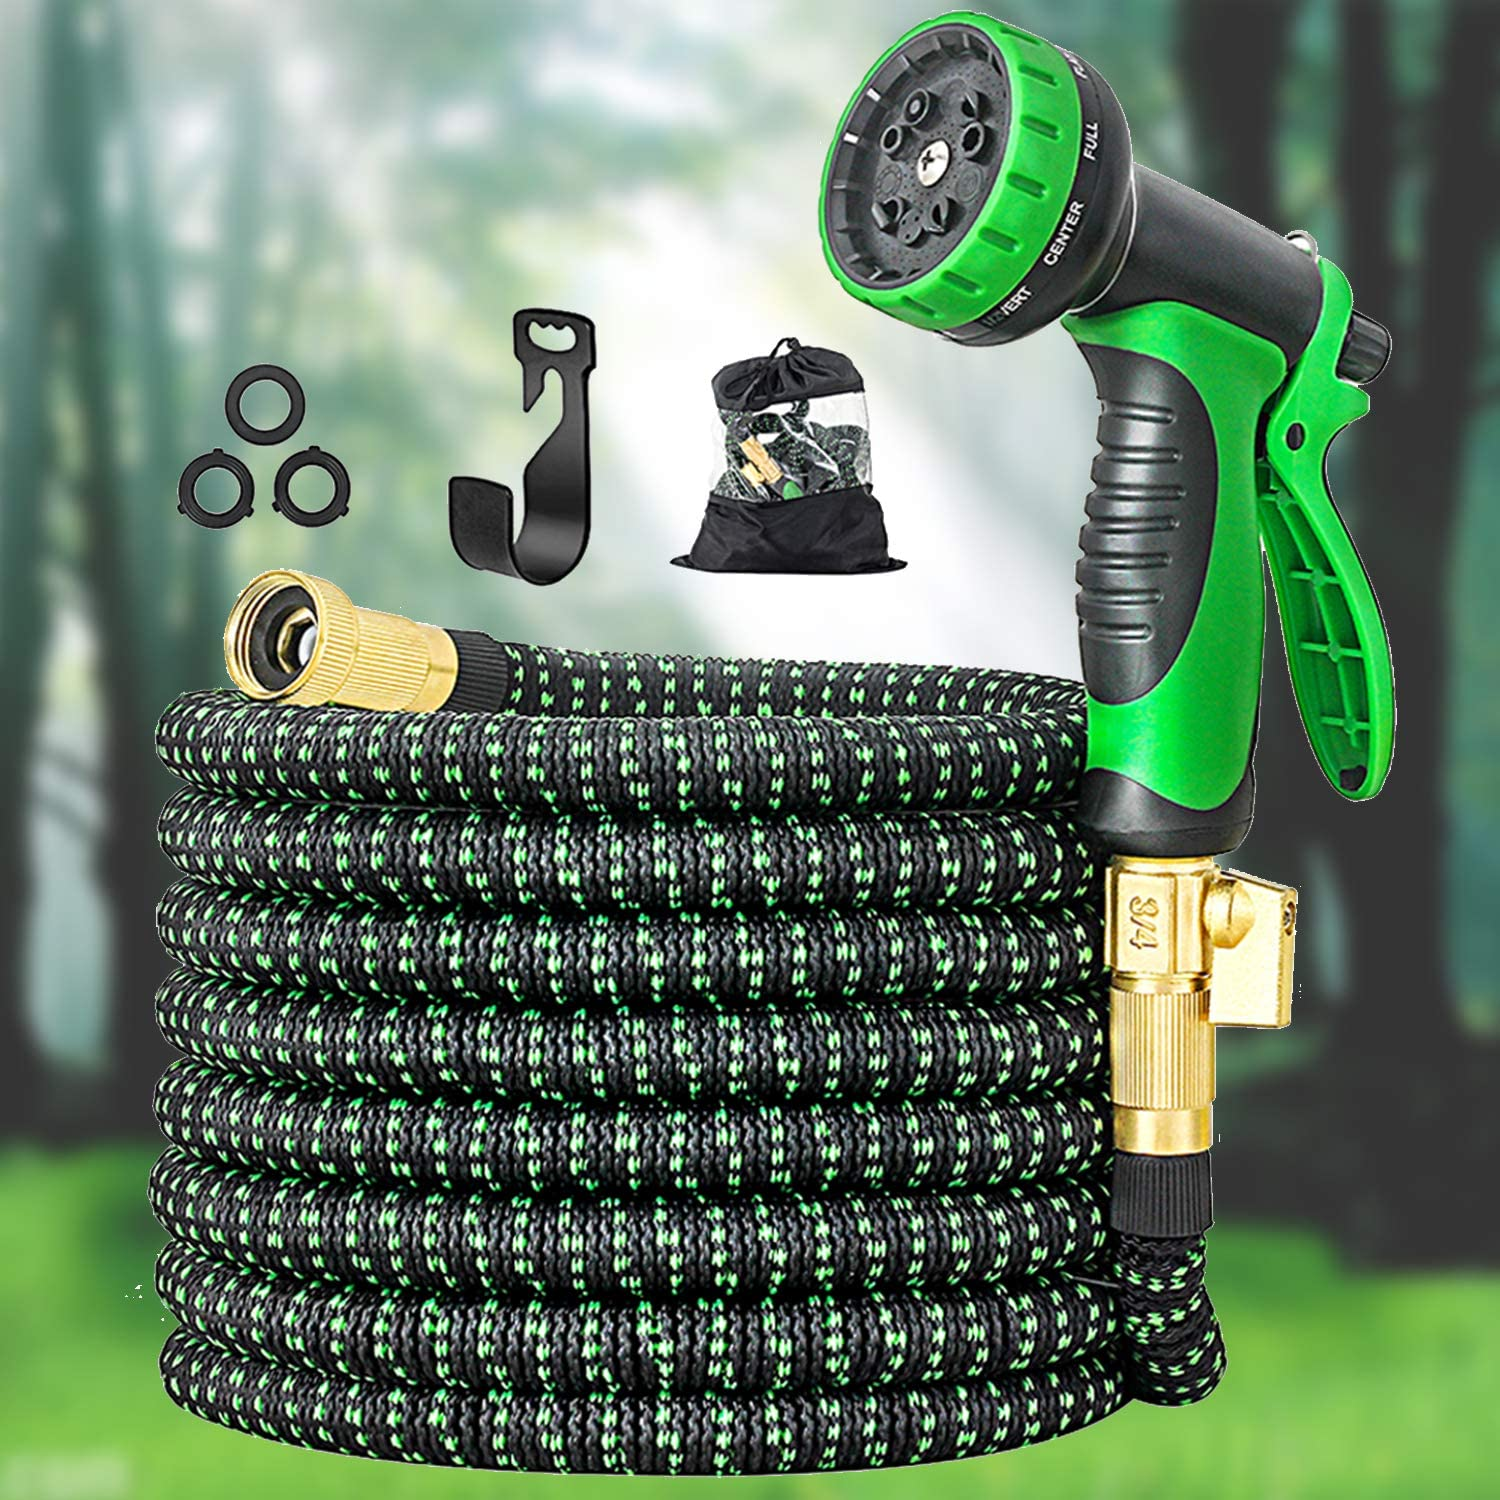 "50FT Garden Hose Expandable Hose, Durable Flexible Water Hose, 10 Function Spray Hose Nozzle, 3/4"" Solid Brass Connectors, Extra Strength 3750d Fabric, Leakproof Lightweight Expanding Collapsible Hose"